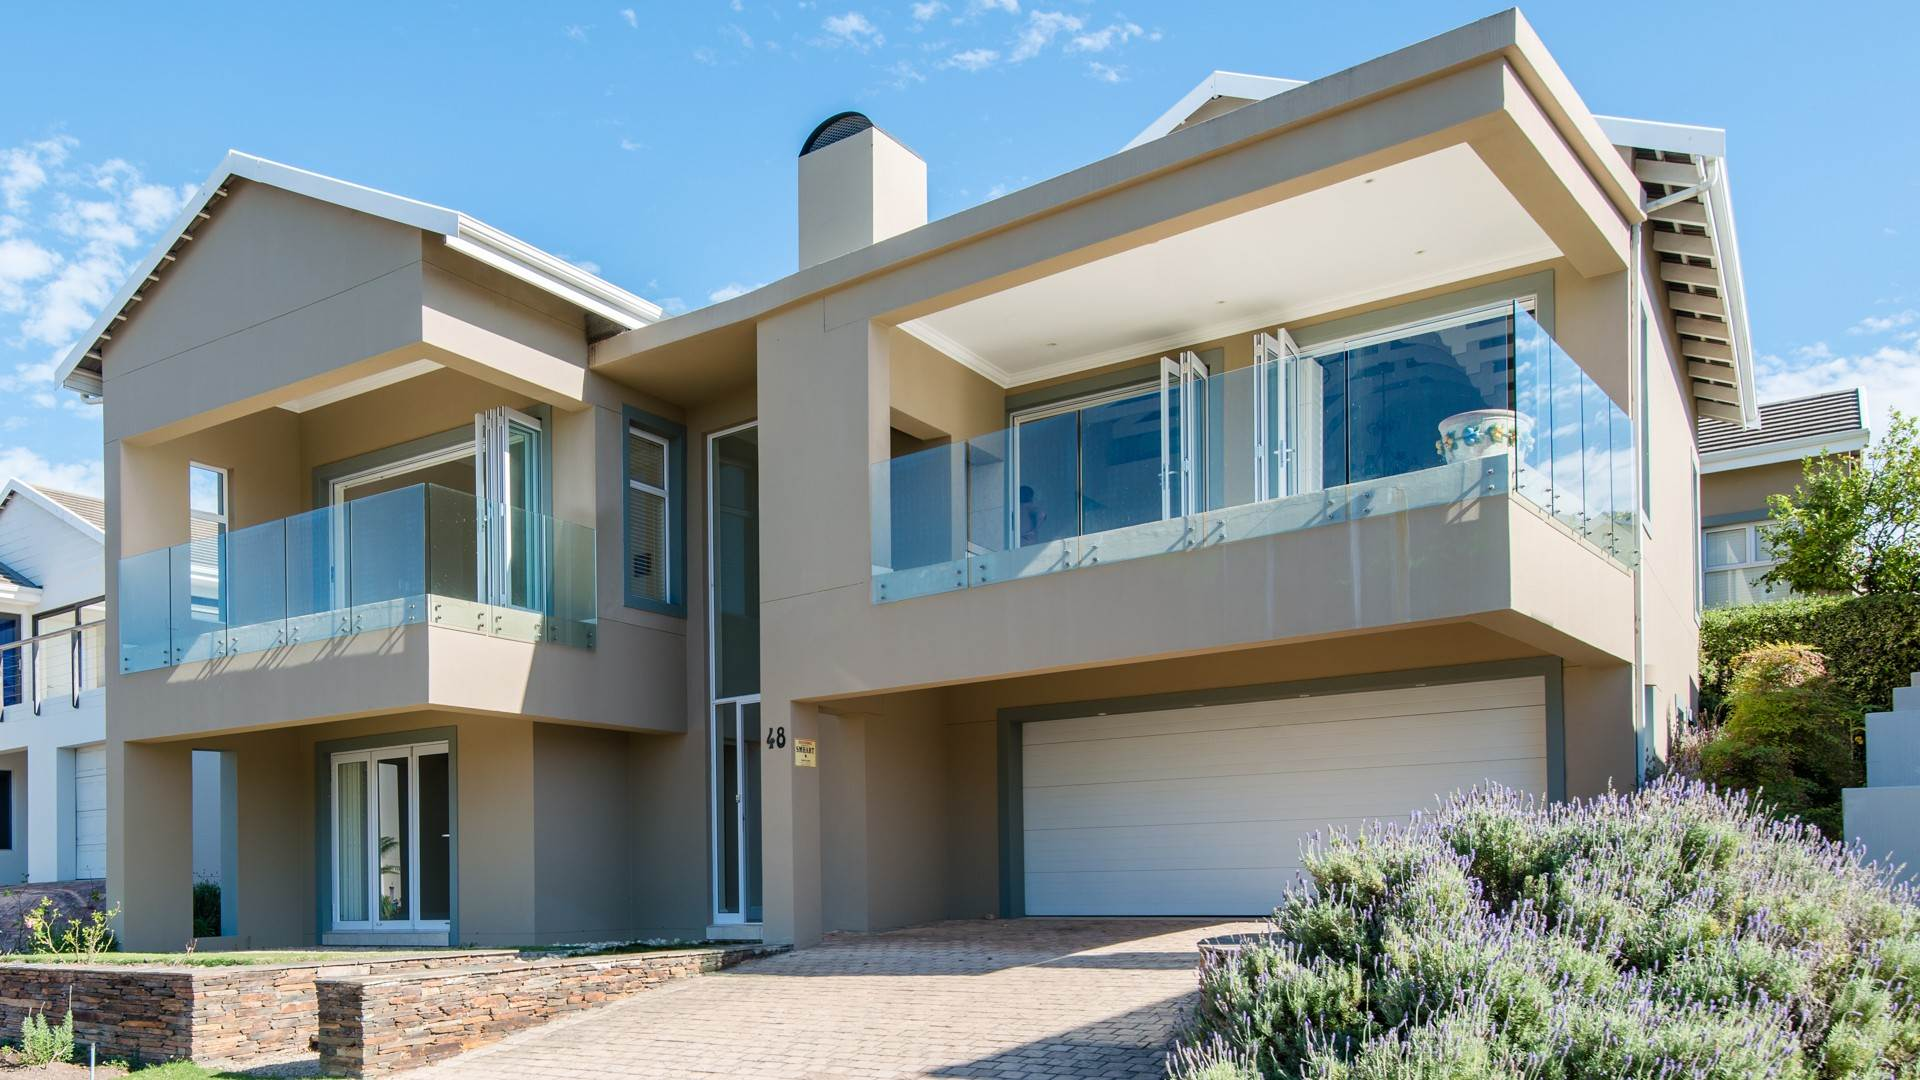 3 BedroomHouse For Sale In Bowtie